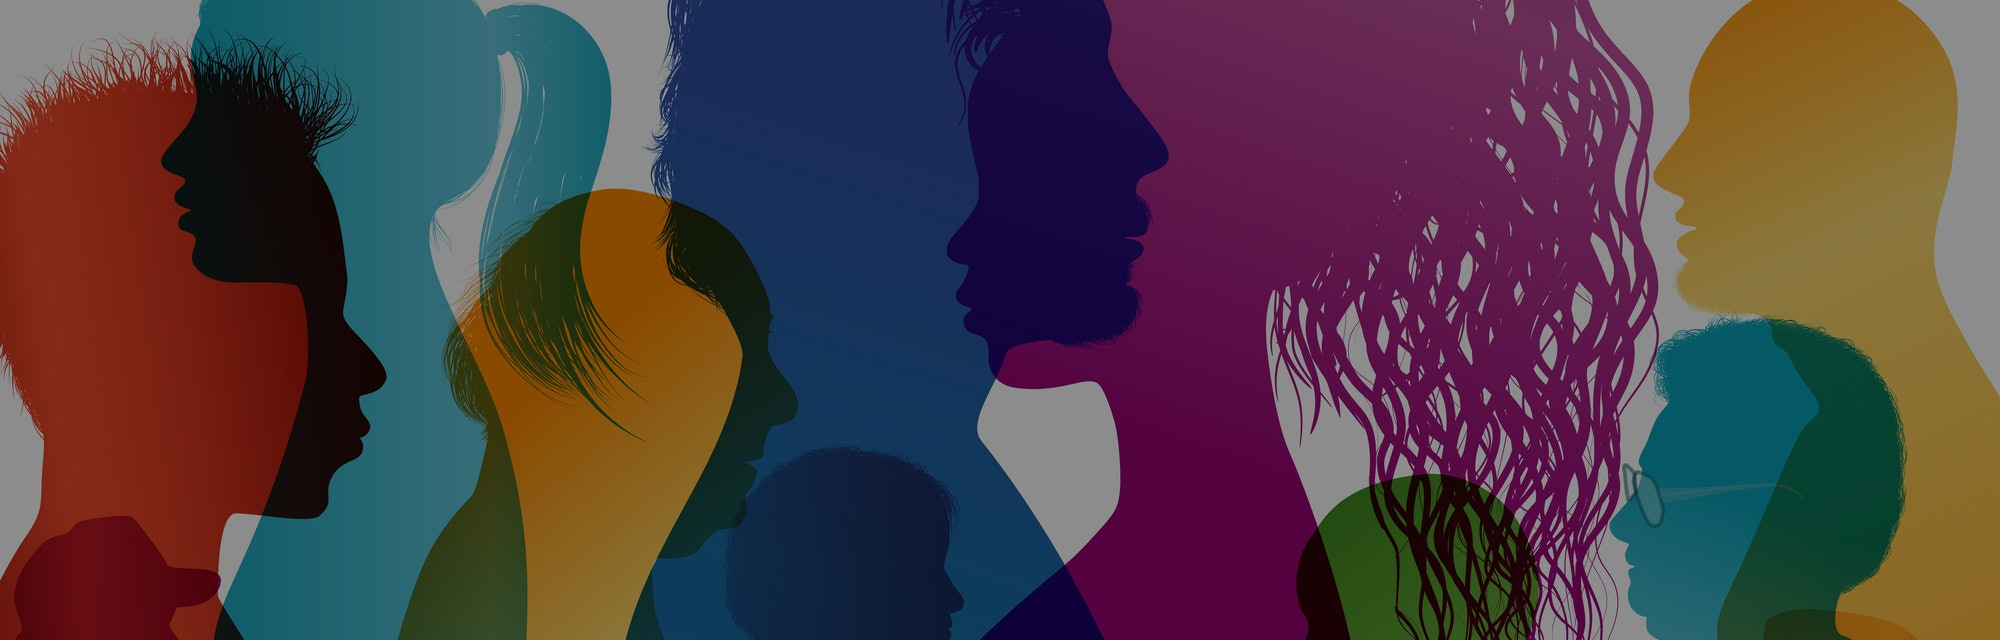 Silhouette profiles of multiracial people. Intercontinental dialogue. Group of people of different ages and nationalities. Multiple exposure vector